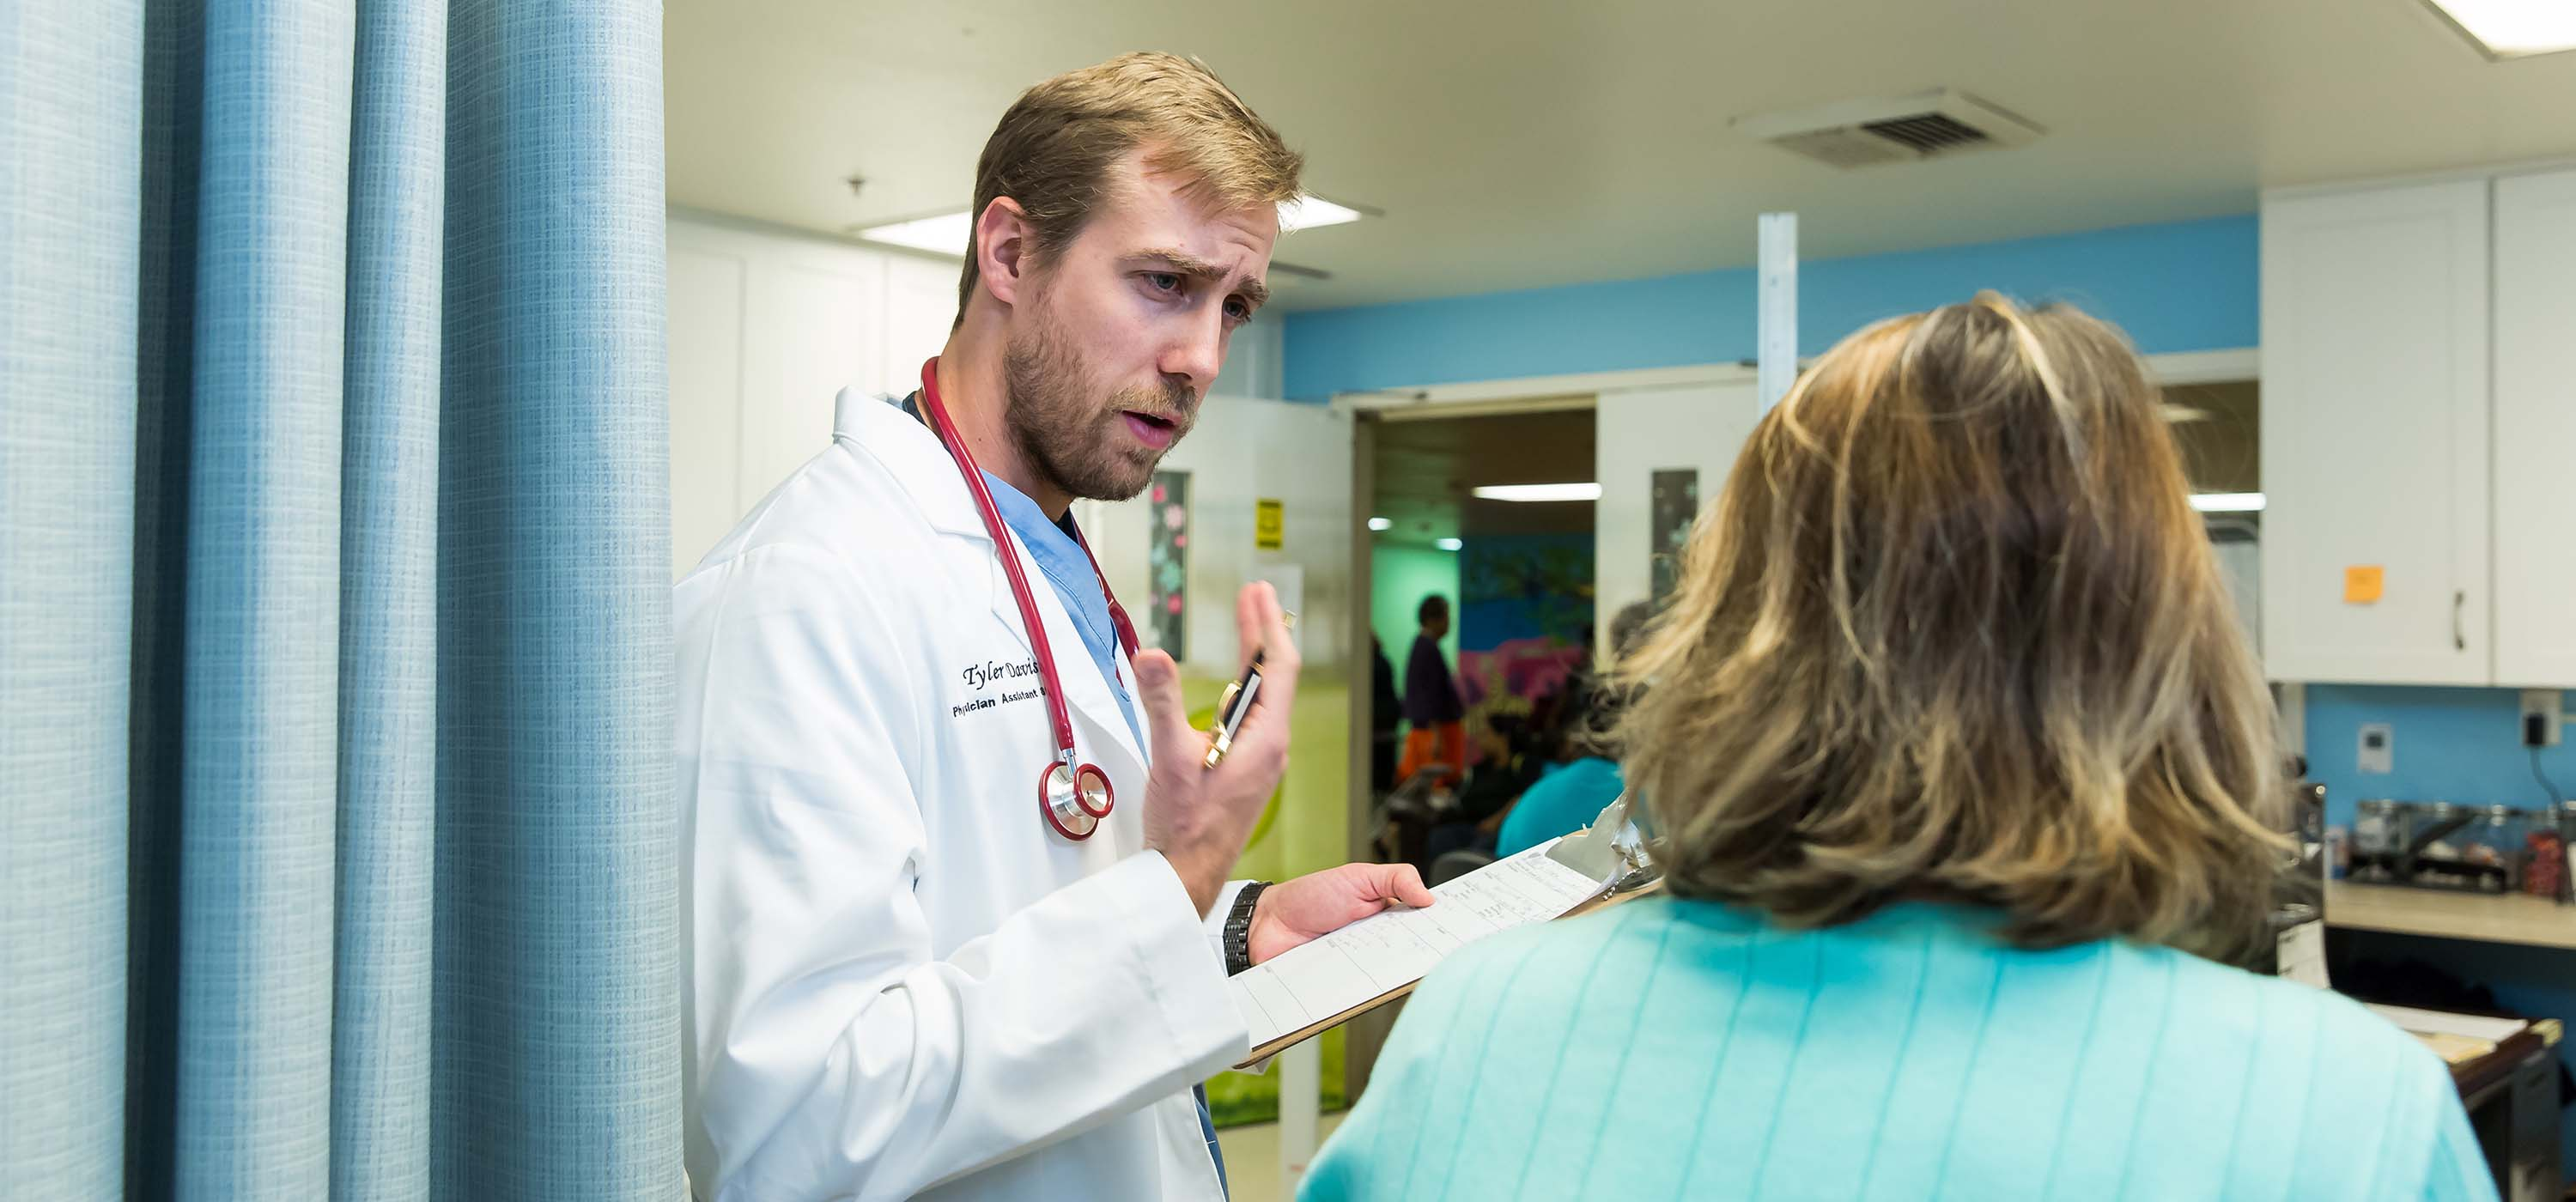 A physician assistant studies student talks to a patient.